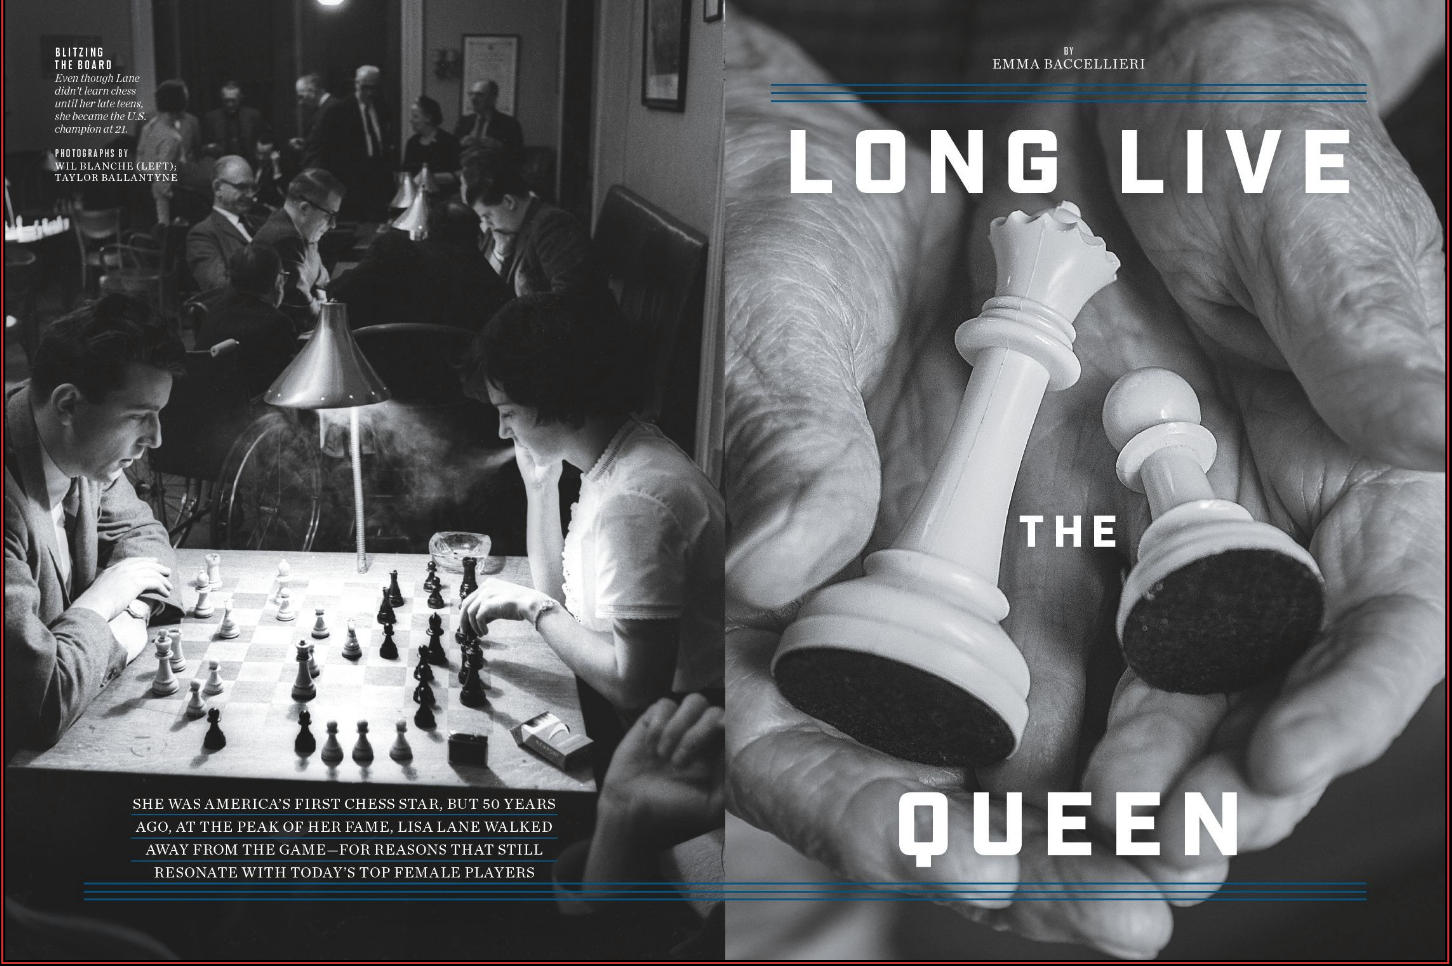 LONG LIVE THE QUEEN - On 1960s pioneering chess star Lisa Lane and women's chess today.(Jan. 14th, 2019 issue; online.)